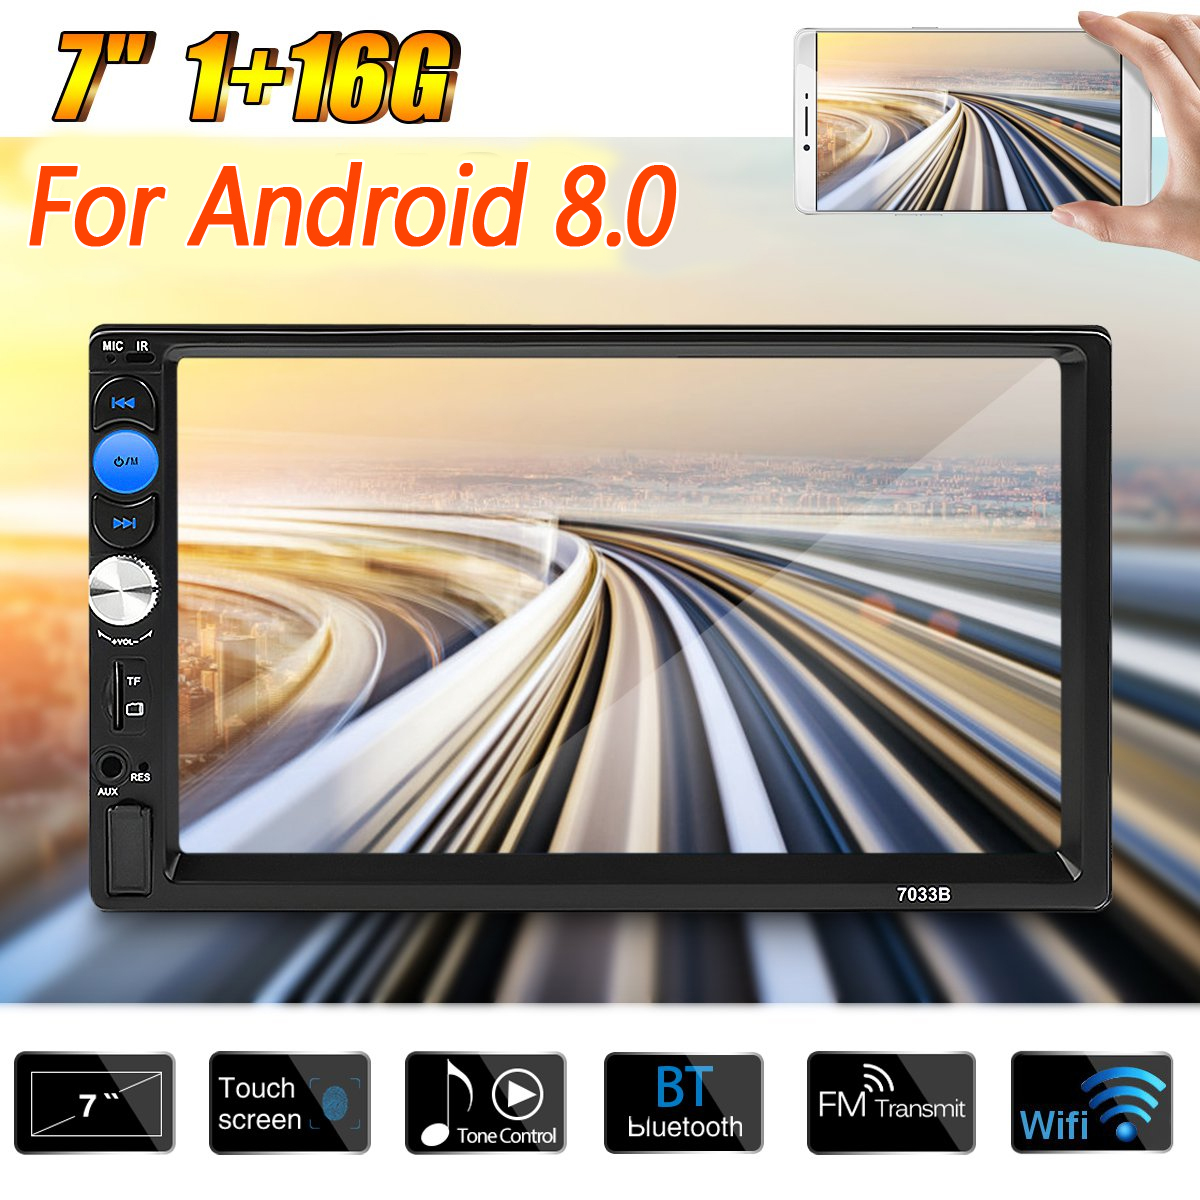 7 2 Din Quad Core for Android 8.0 Universal Car DVD Player WIFI 3G GPS Navigation Stereo Player bluetooth Radio Indash